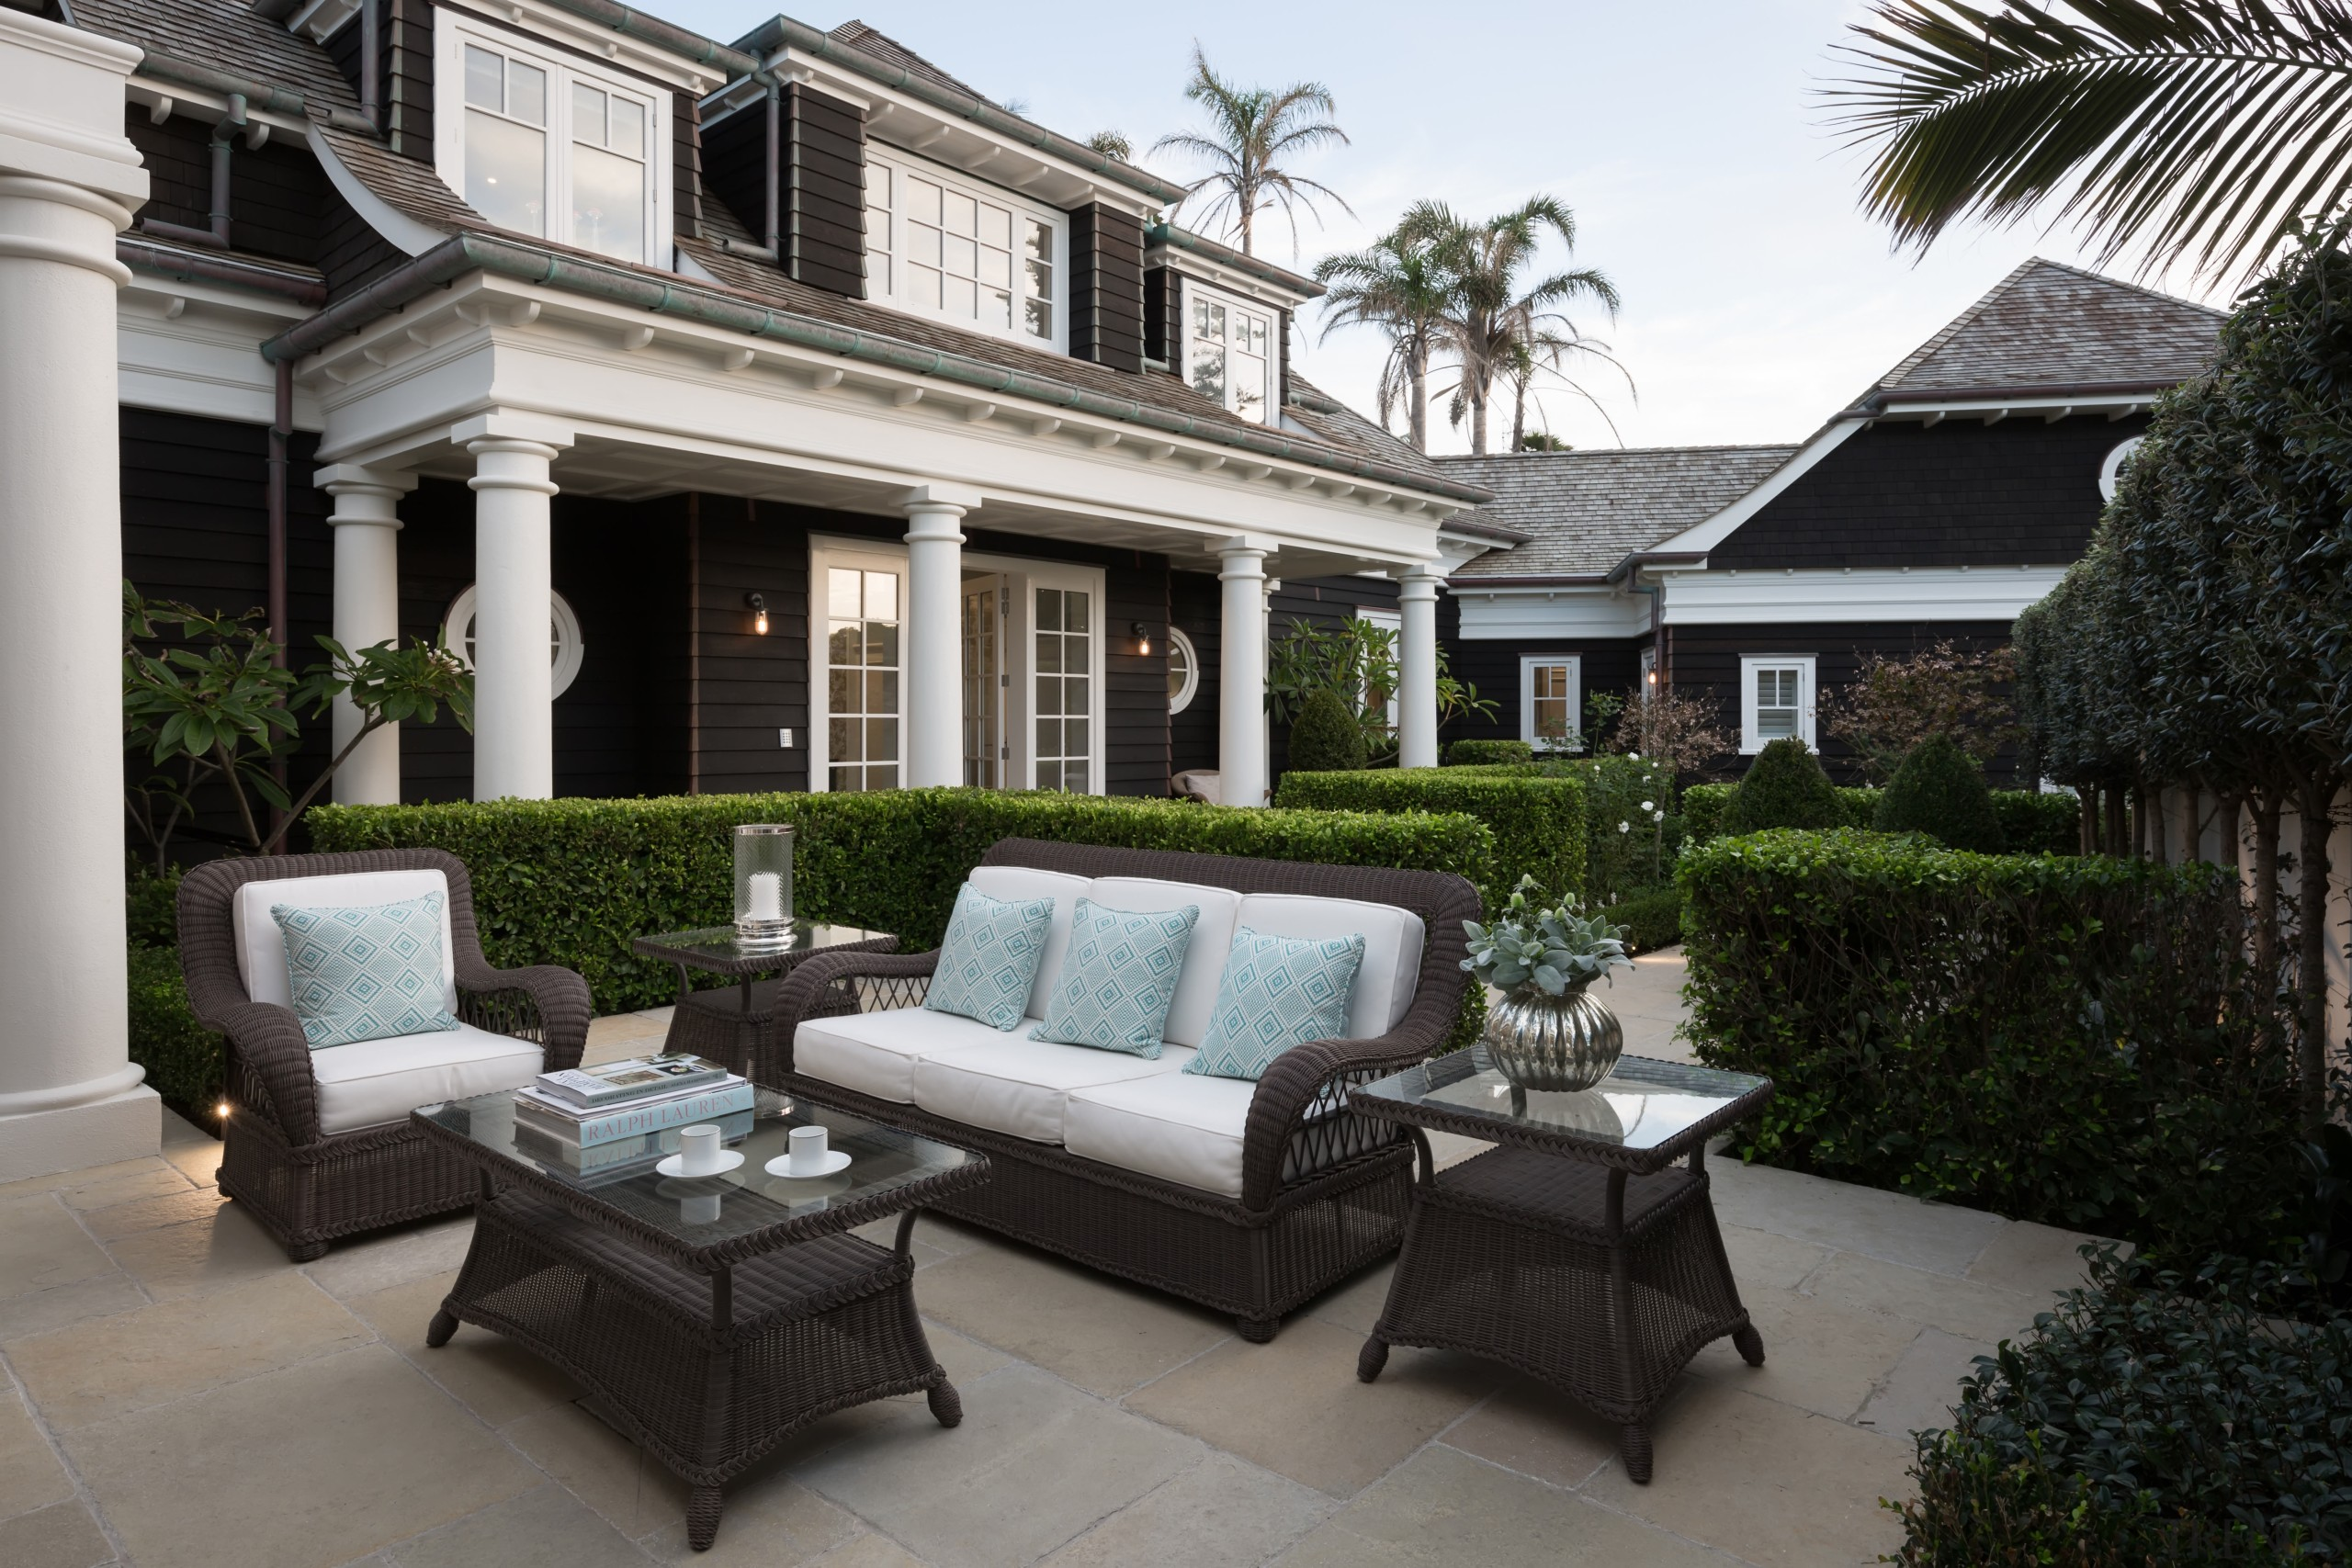 Formal gardens by Robin Shaffer set off this backyard, courtyard, estate, furniture, home, house, interior design, luxury vehicle, outdoor structure, patio, property, real estate, window, black, gray